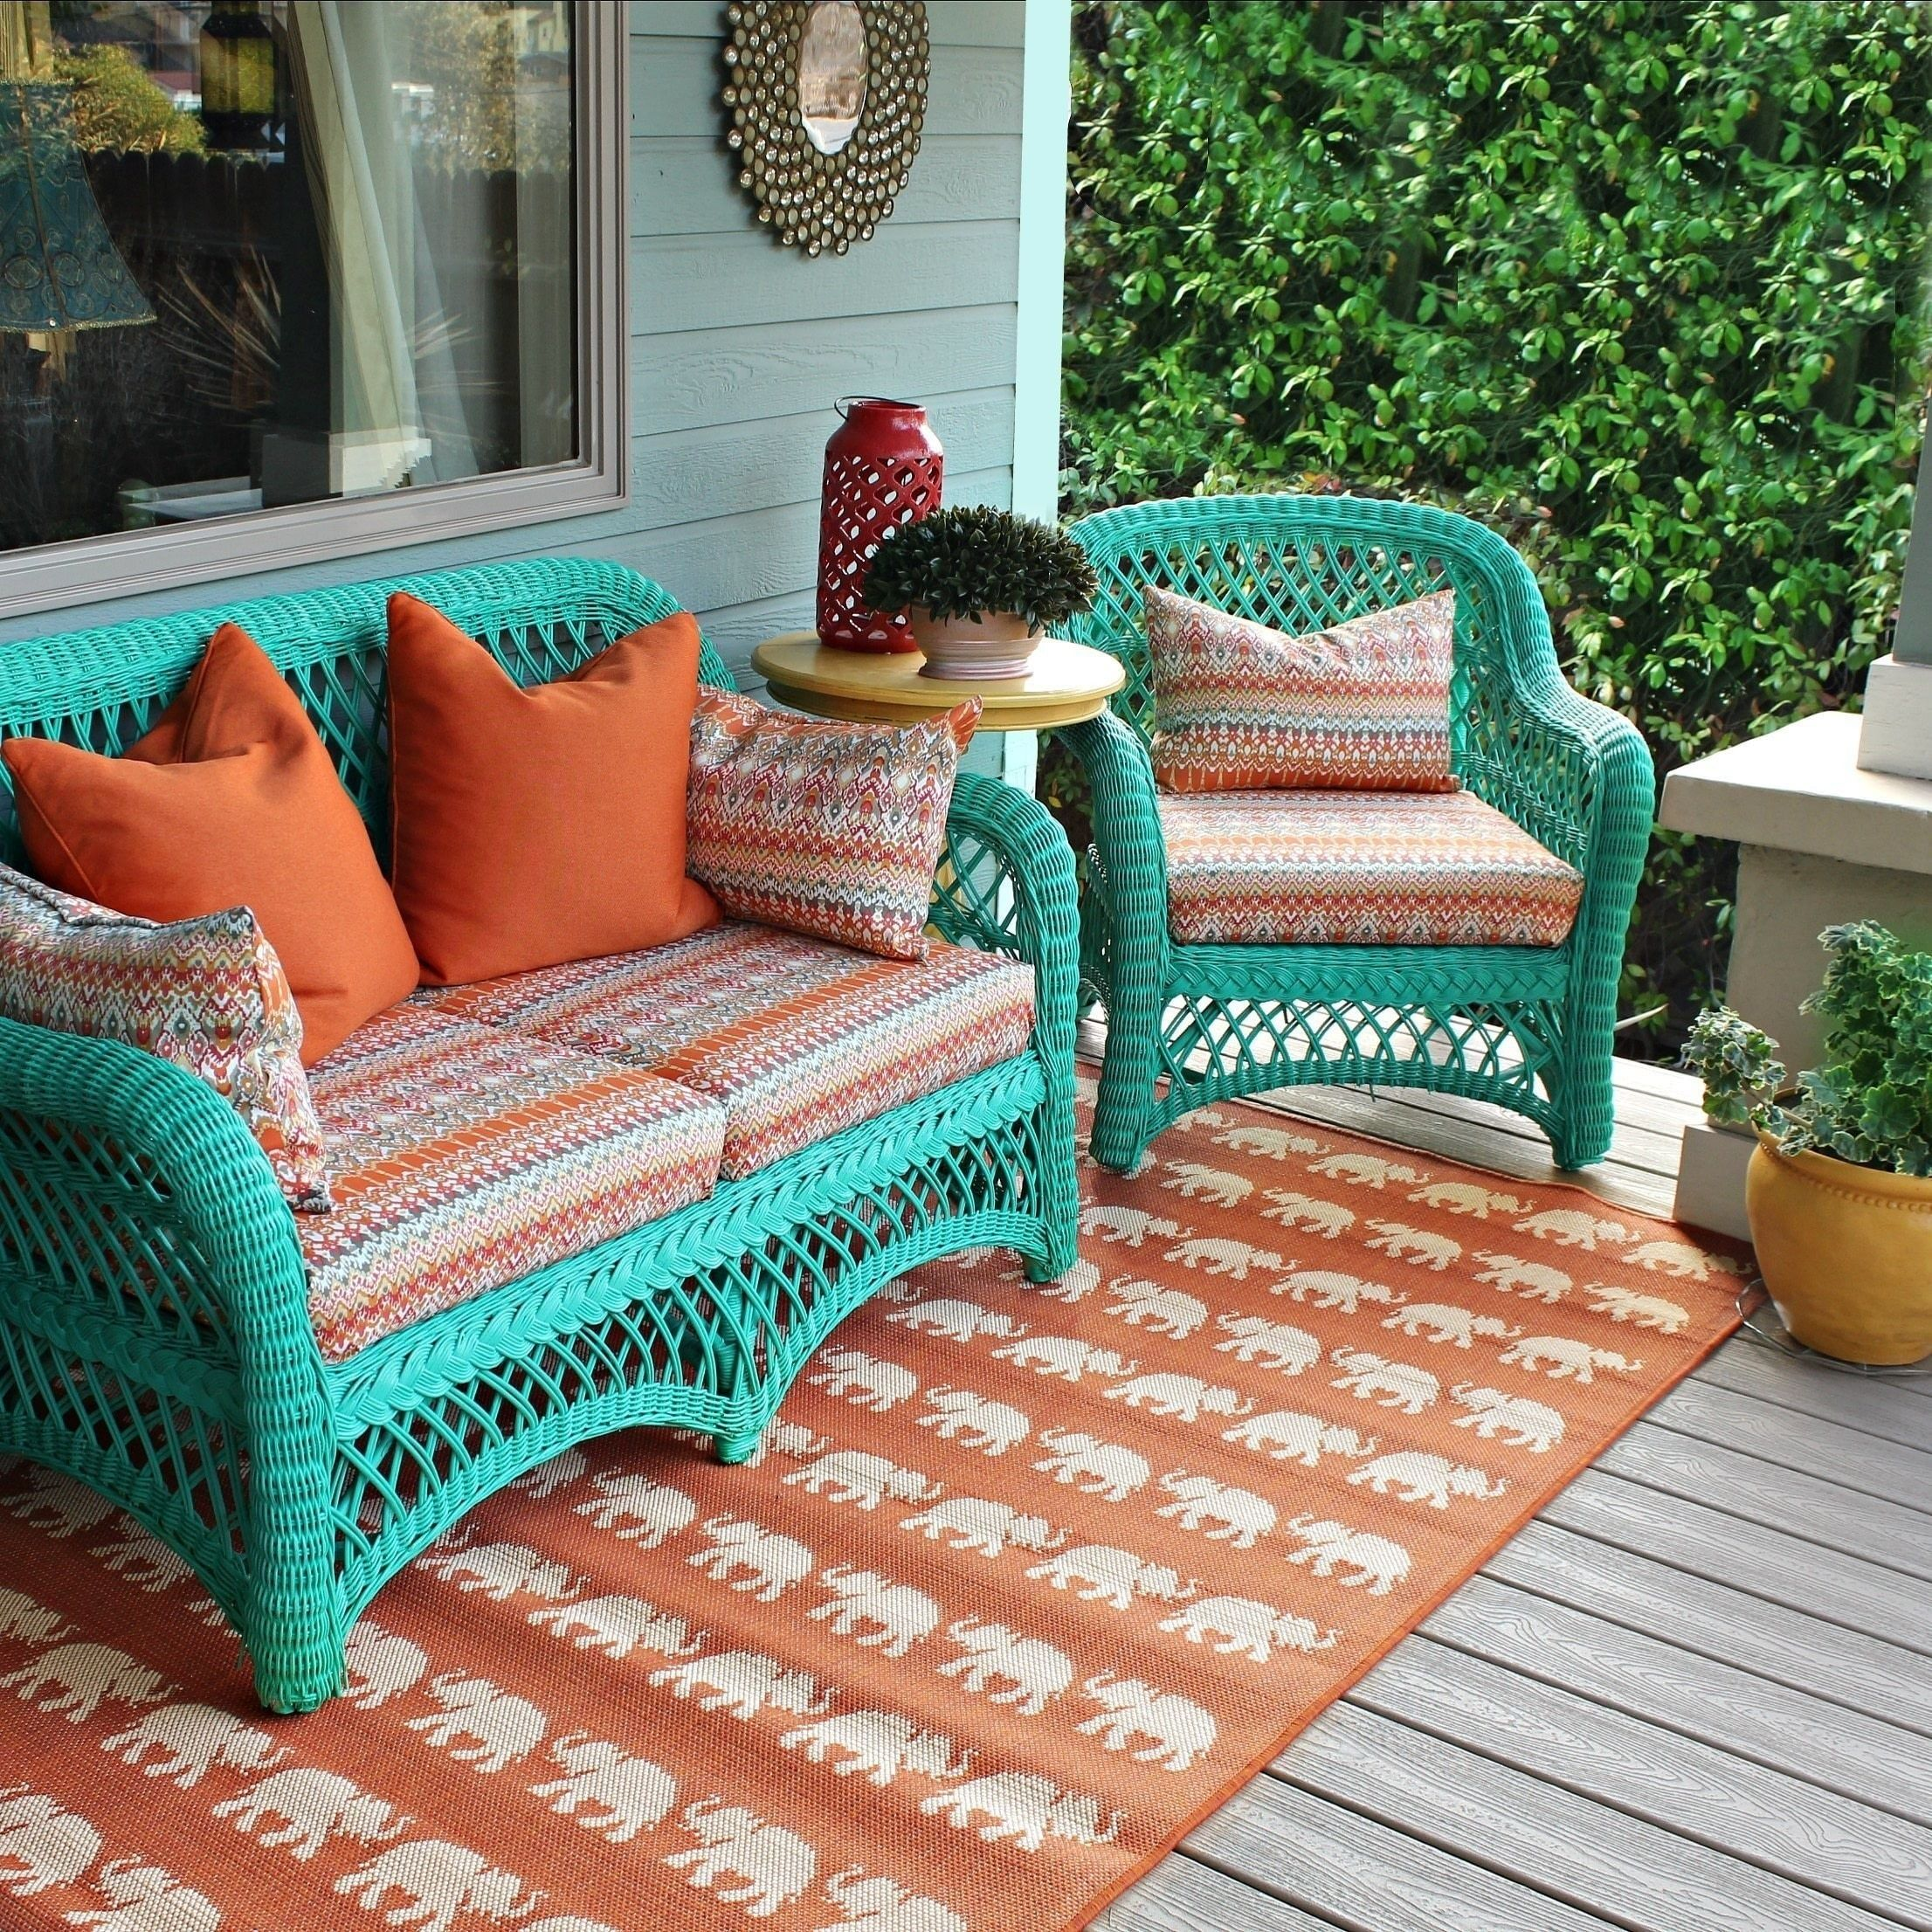 No Sew Patio Cushions And Pillows Patio furniture